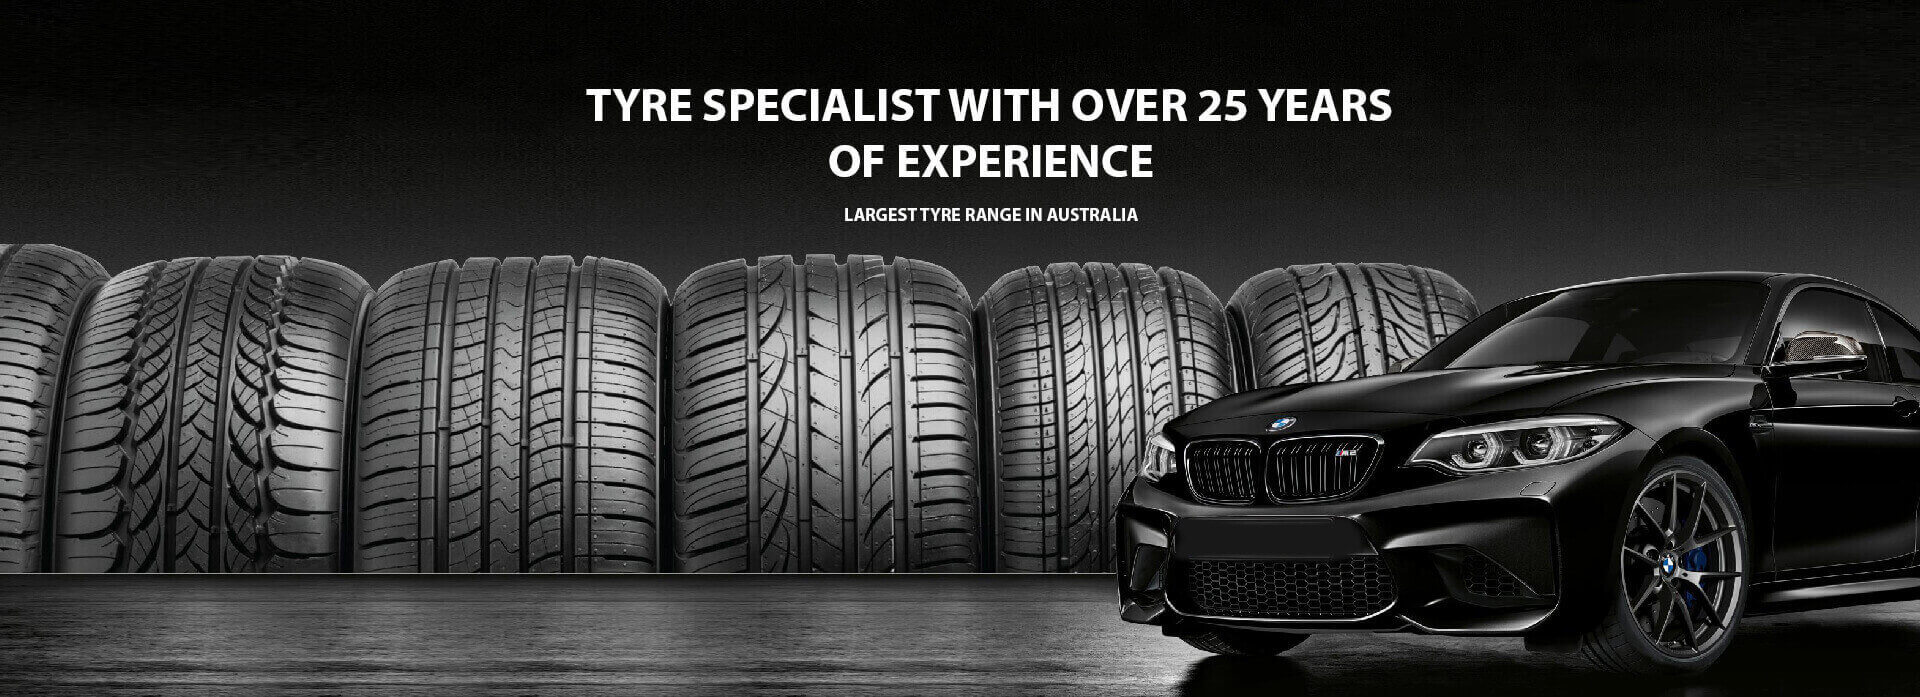 Tyre Specialist